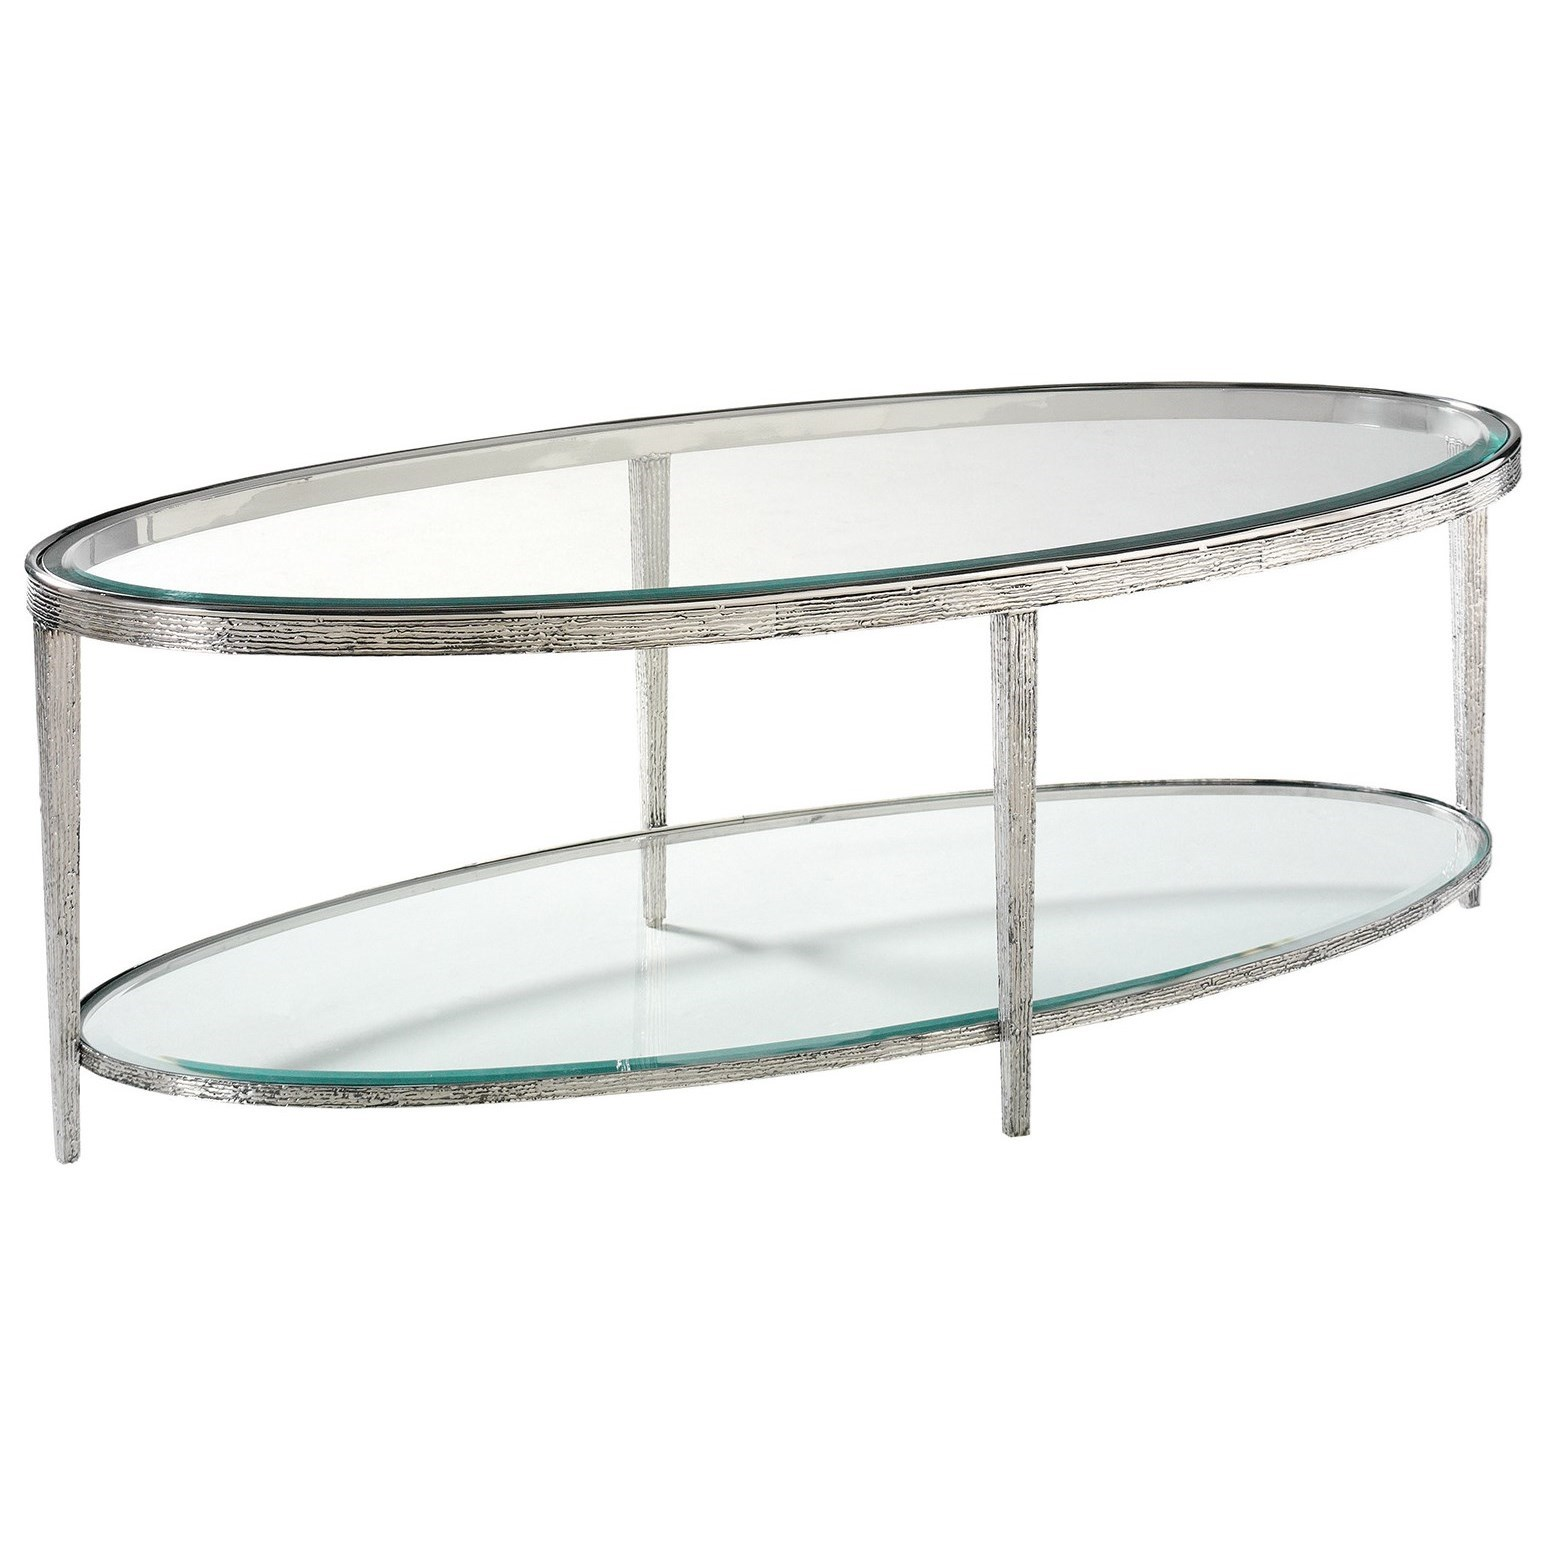 Hancock & Moore H & M Occasional Jinx Nickel Cocktail Table - Oval - Item Number: HM1016C